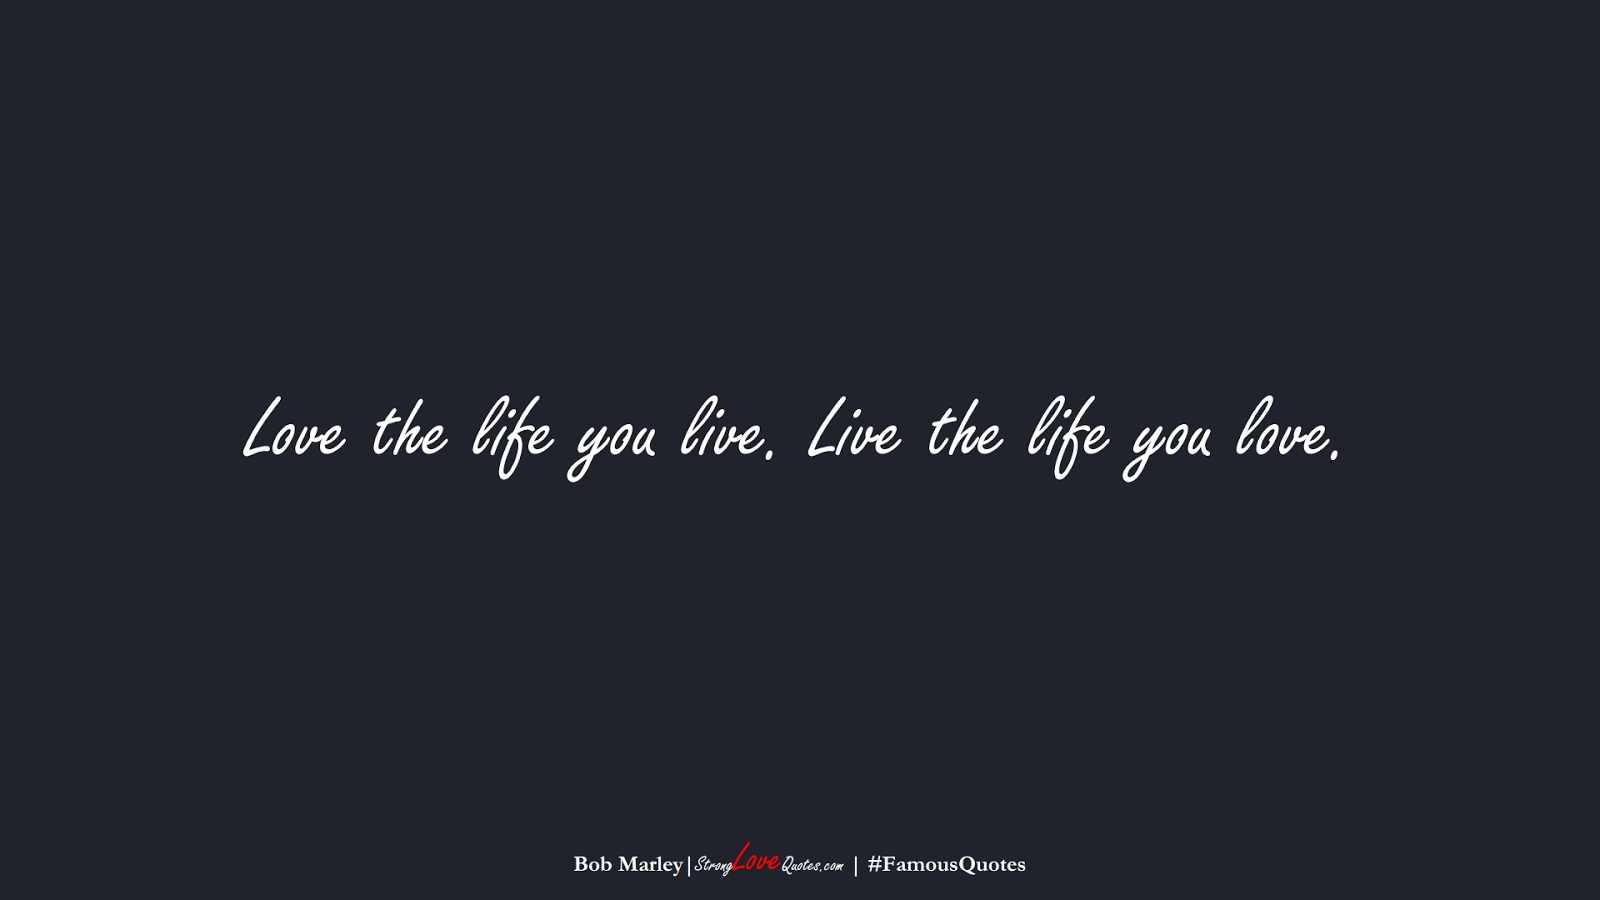 Love the life you live. Live the life you love. (Bob Marley);  #FamousQuotes